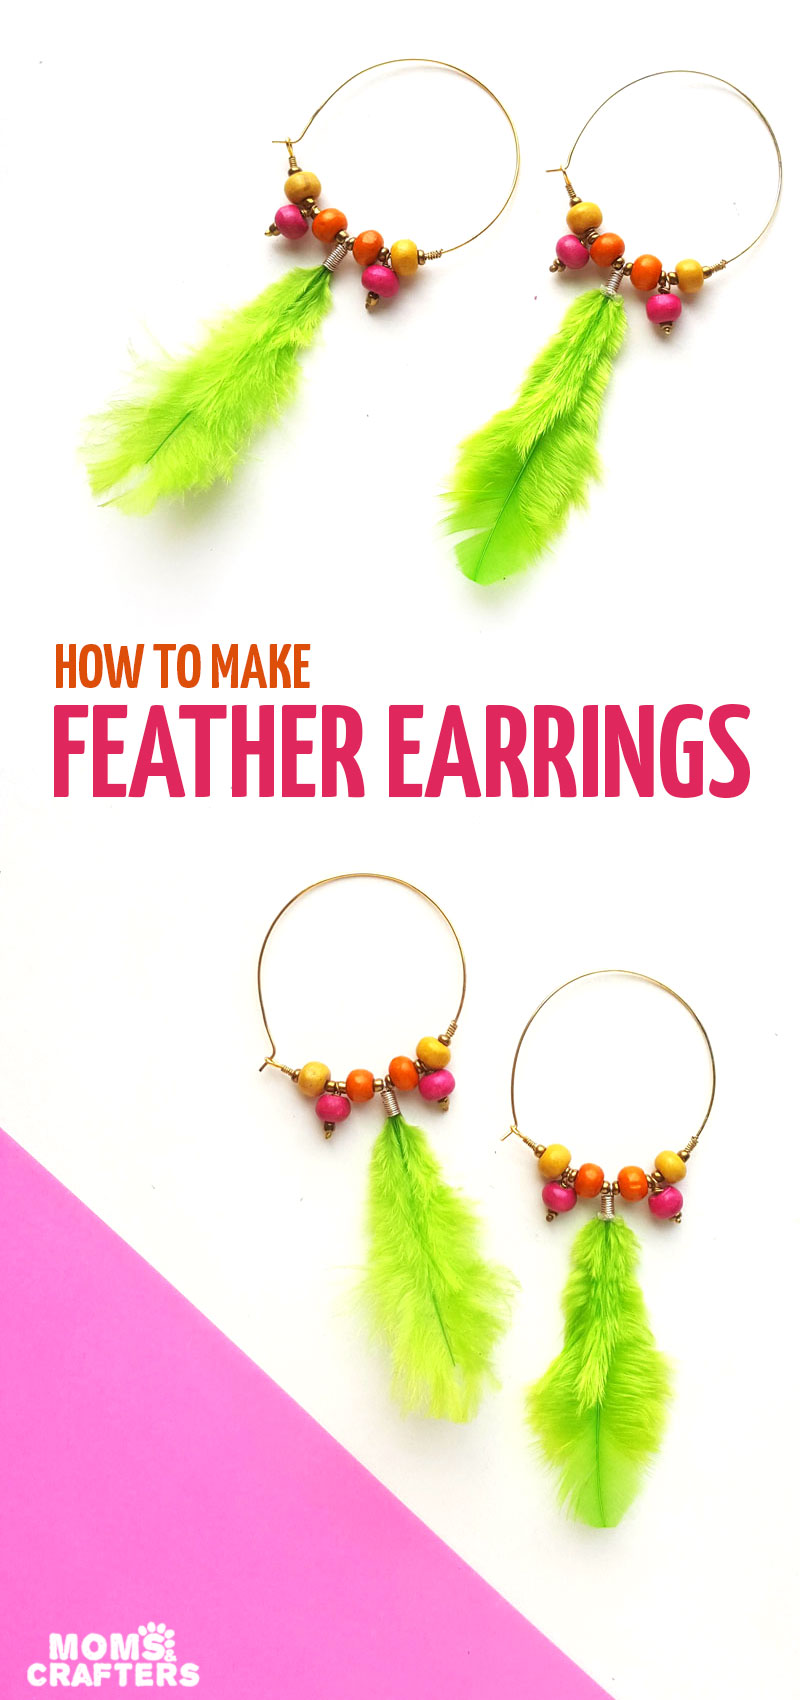 Create your own DIY feather earrings - a boho chic DIY jewelry making project for beginners!